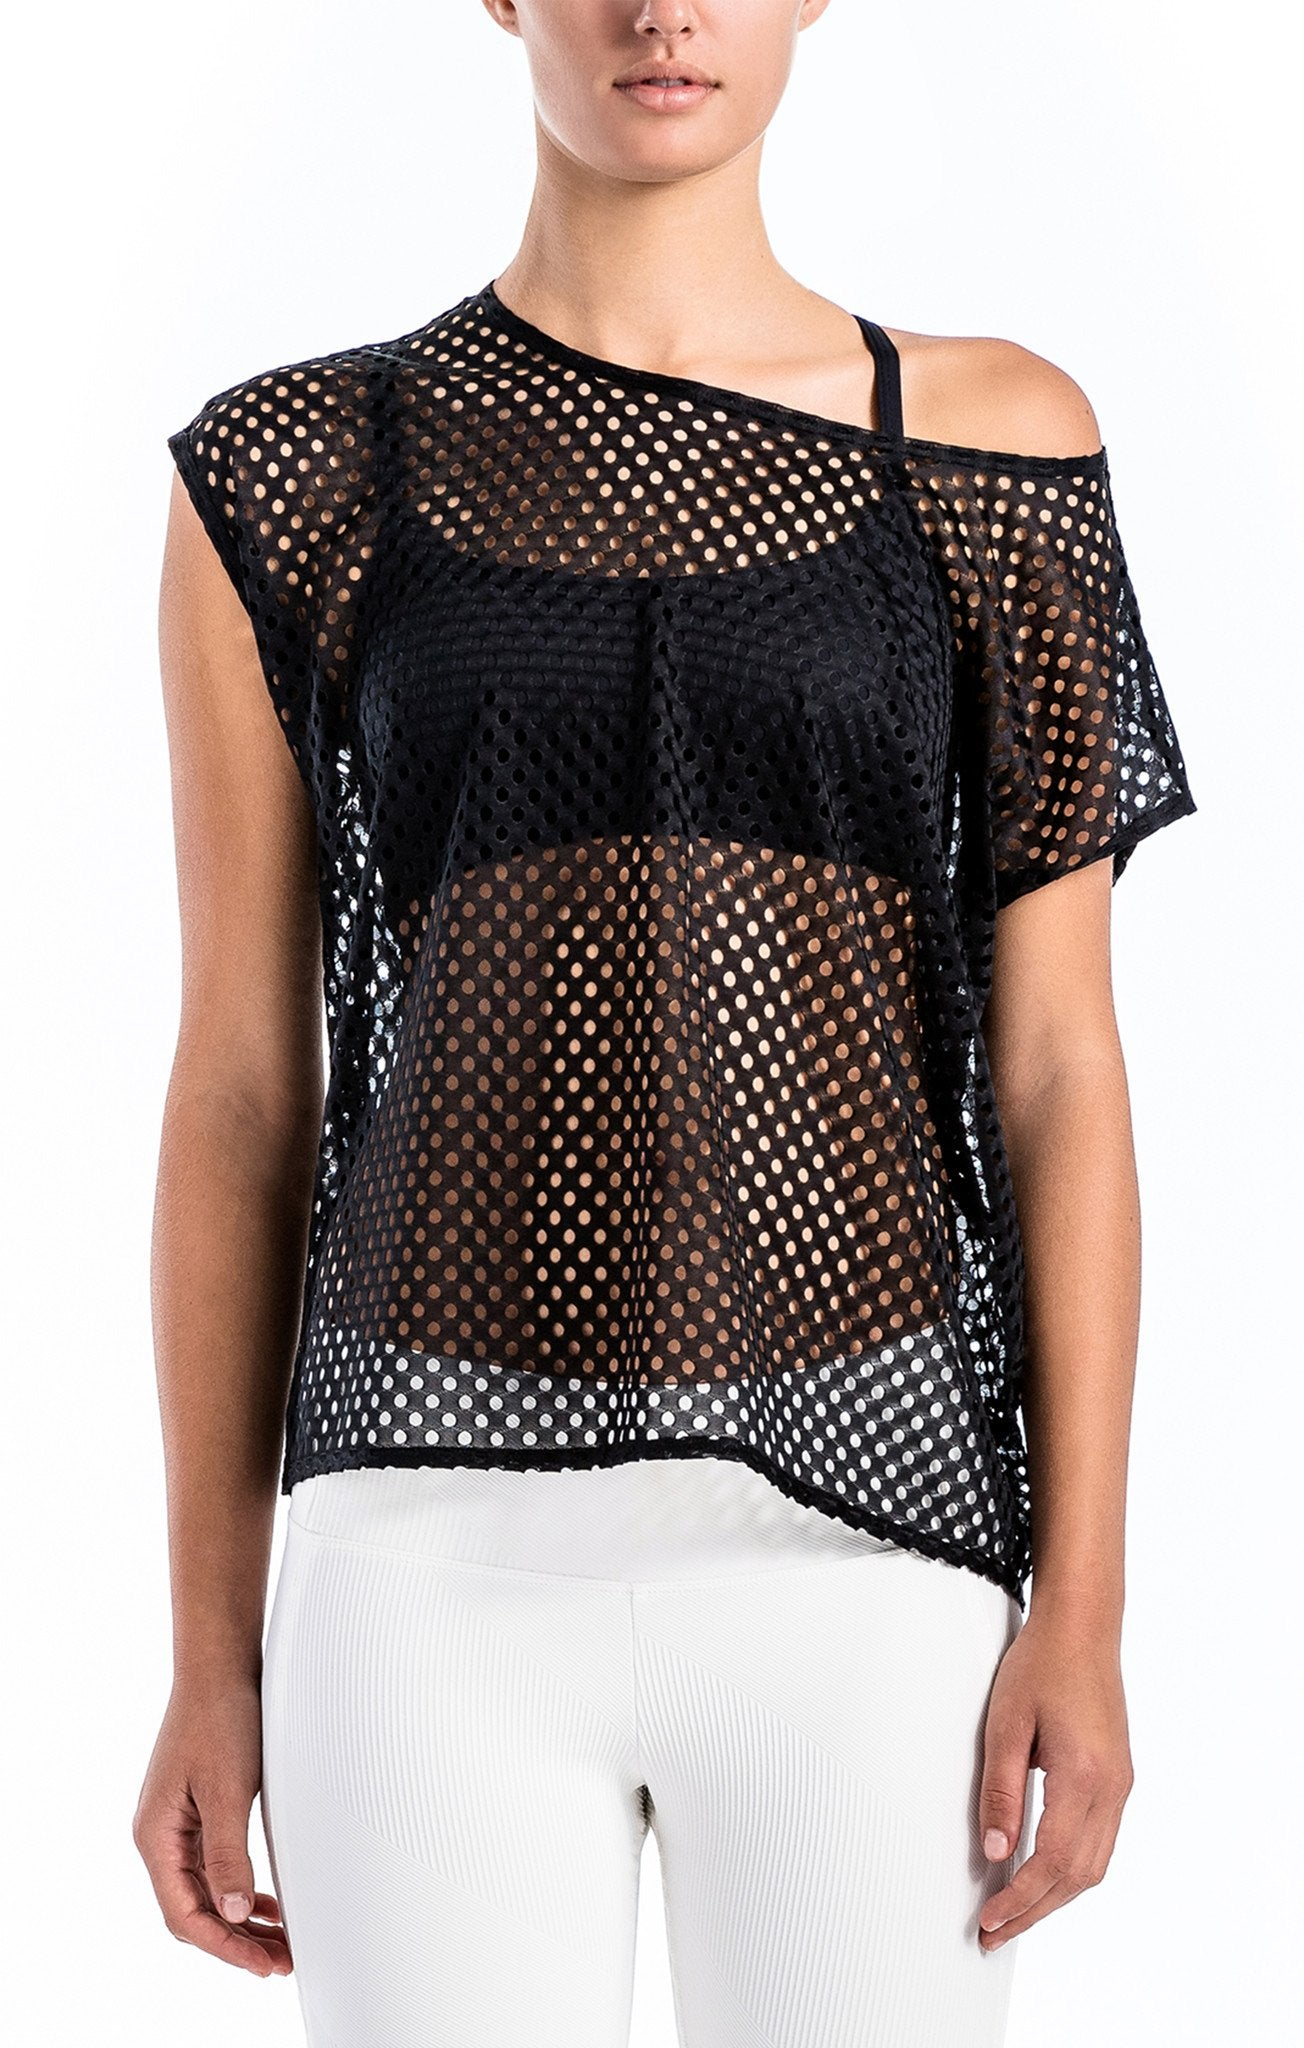 Natalia Perforated Dolman - Workout Tops